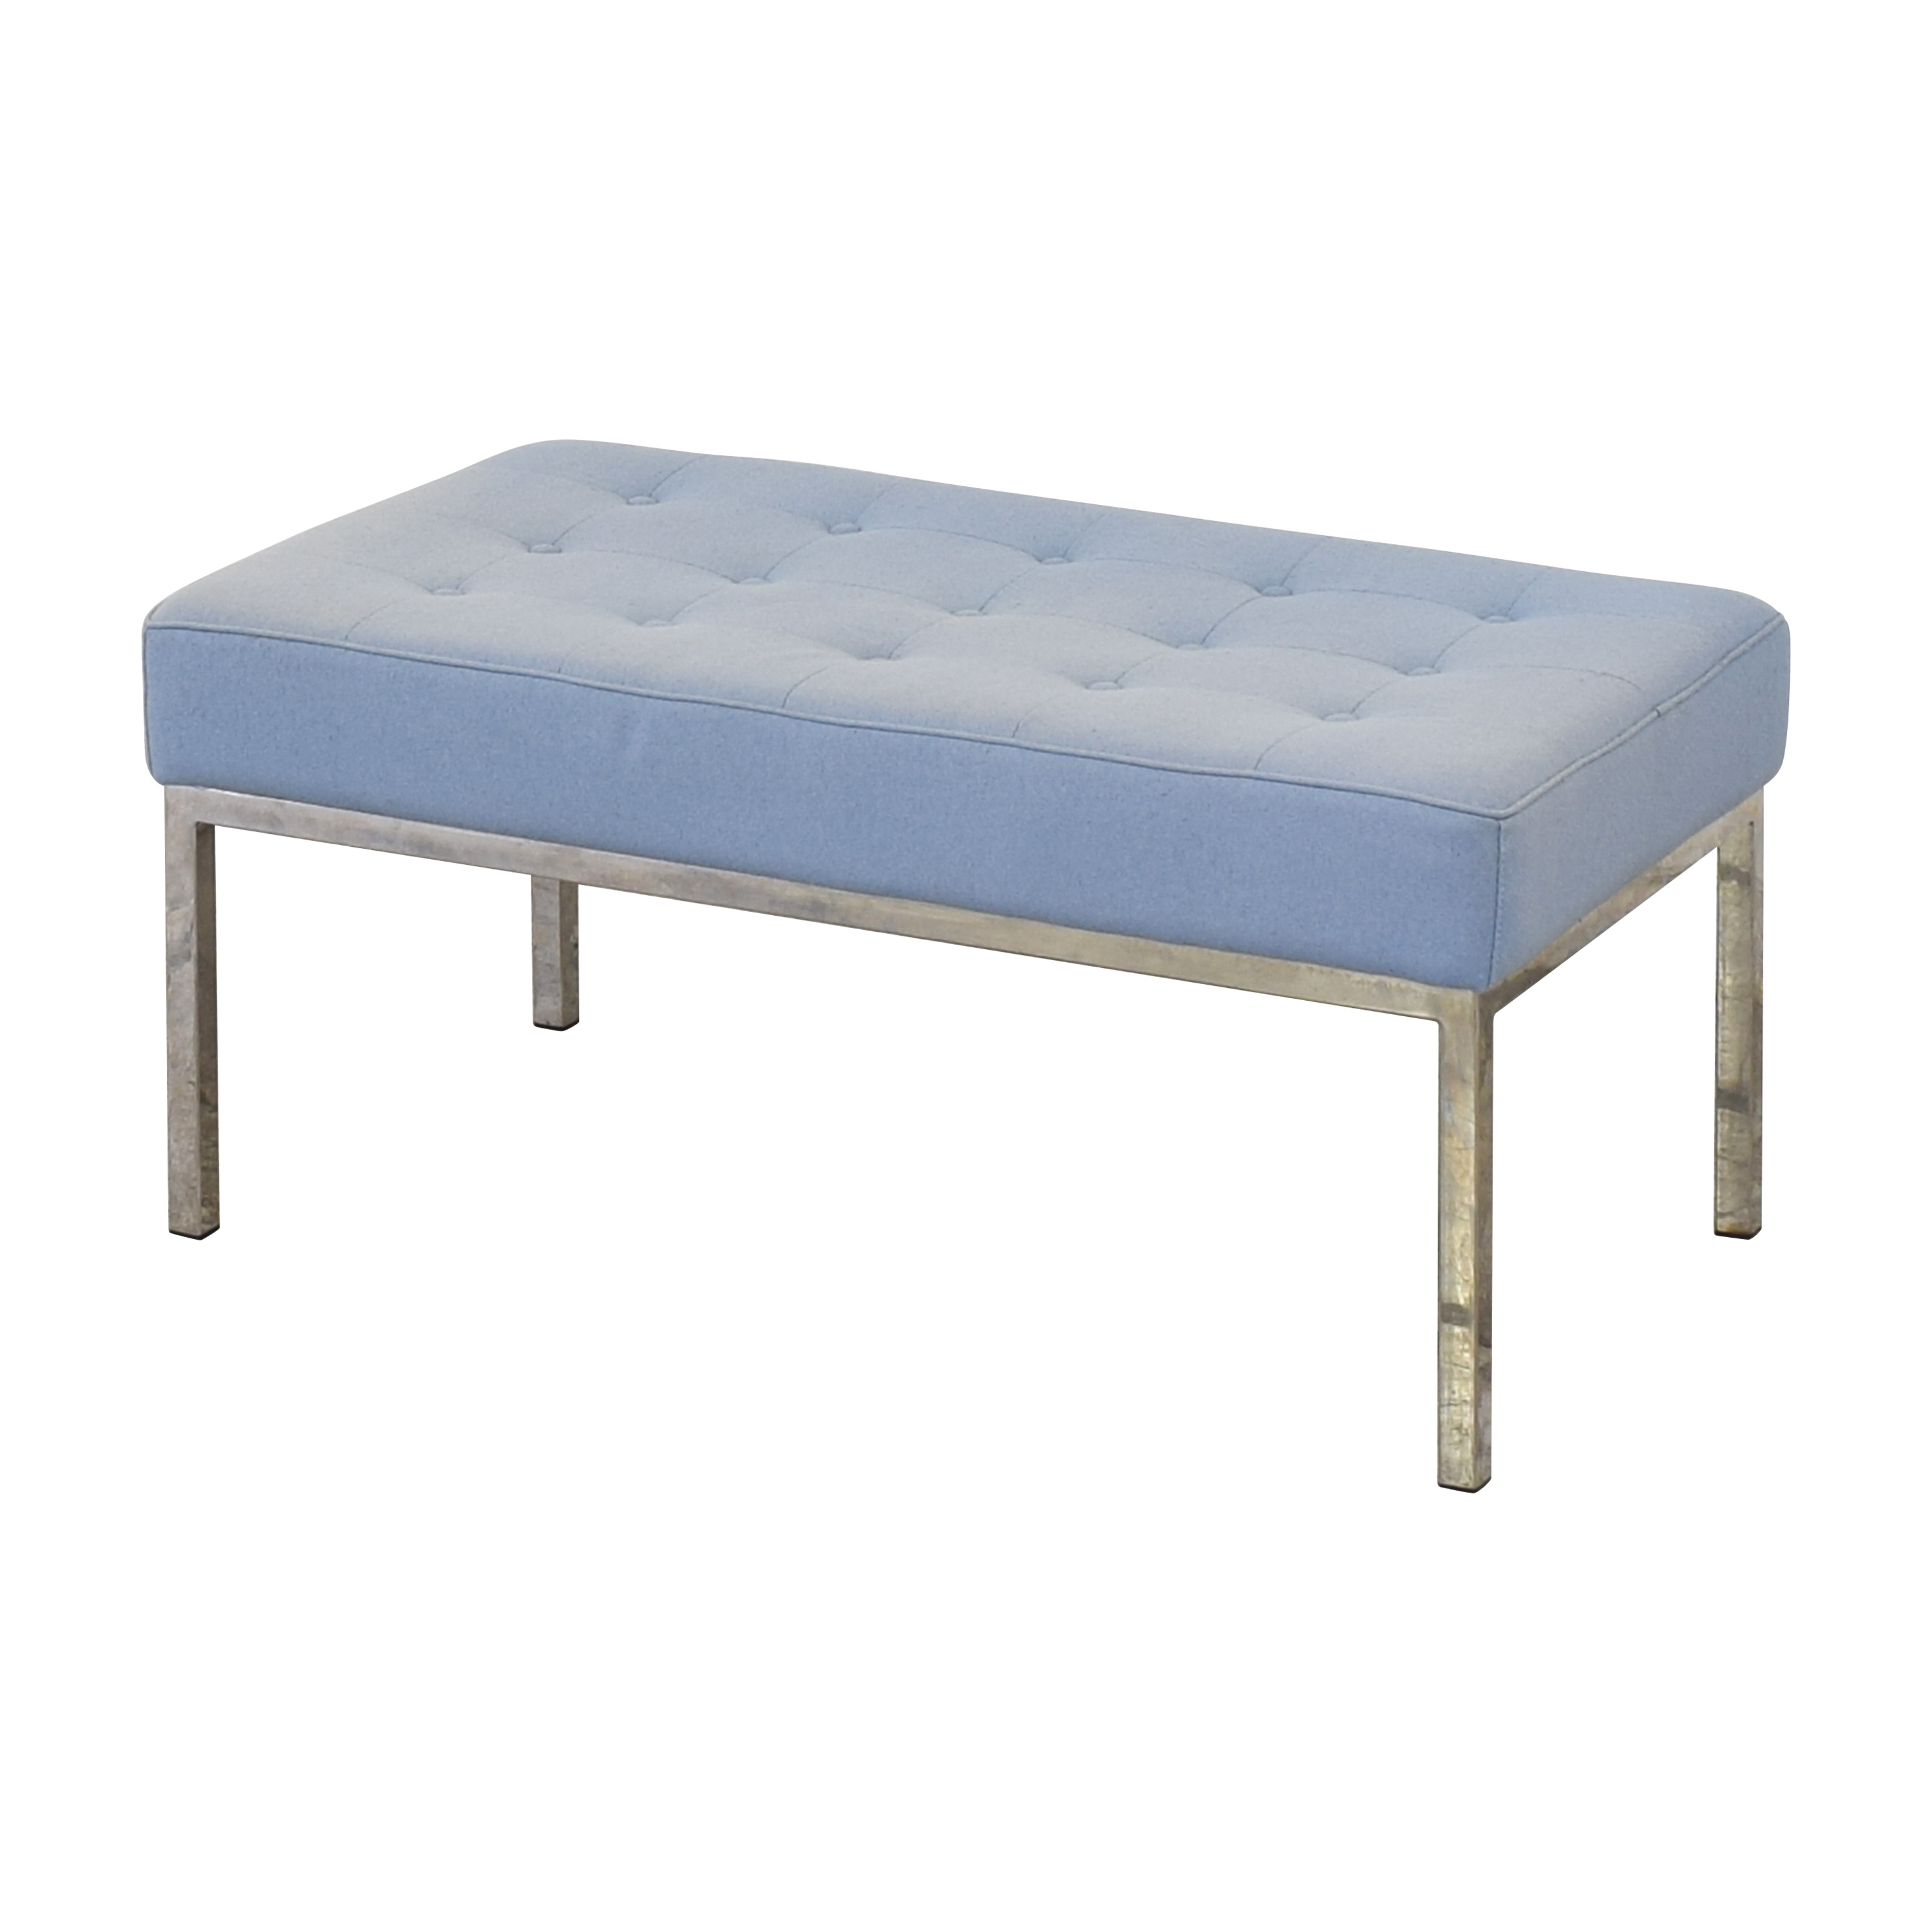 Rove Concepts Rove Concepts Mid Century Tufted Bench ct